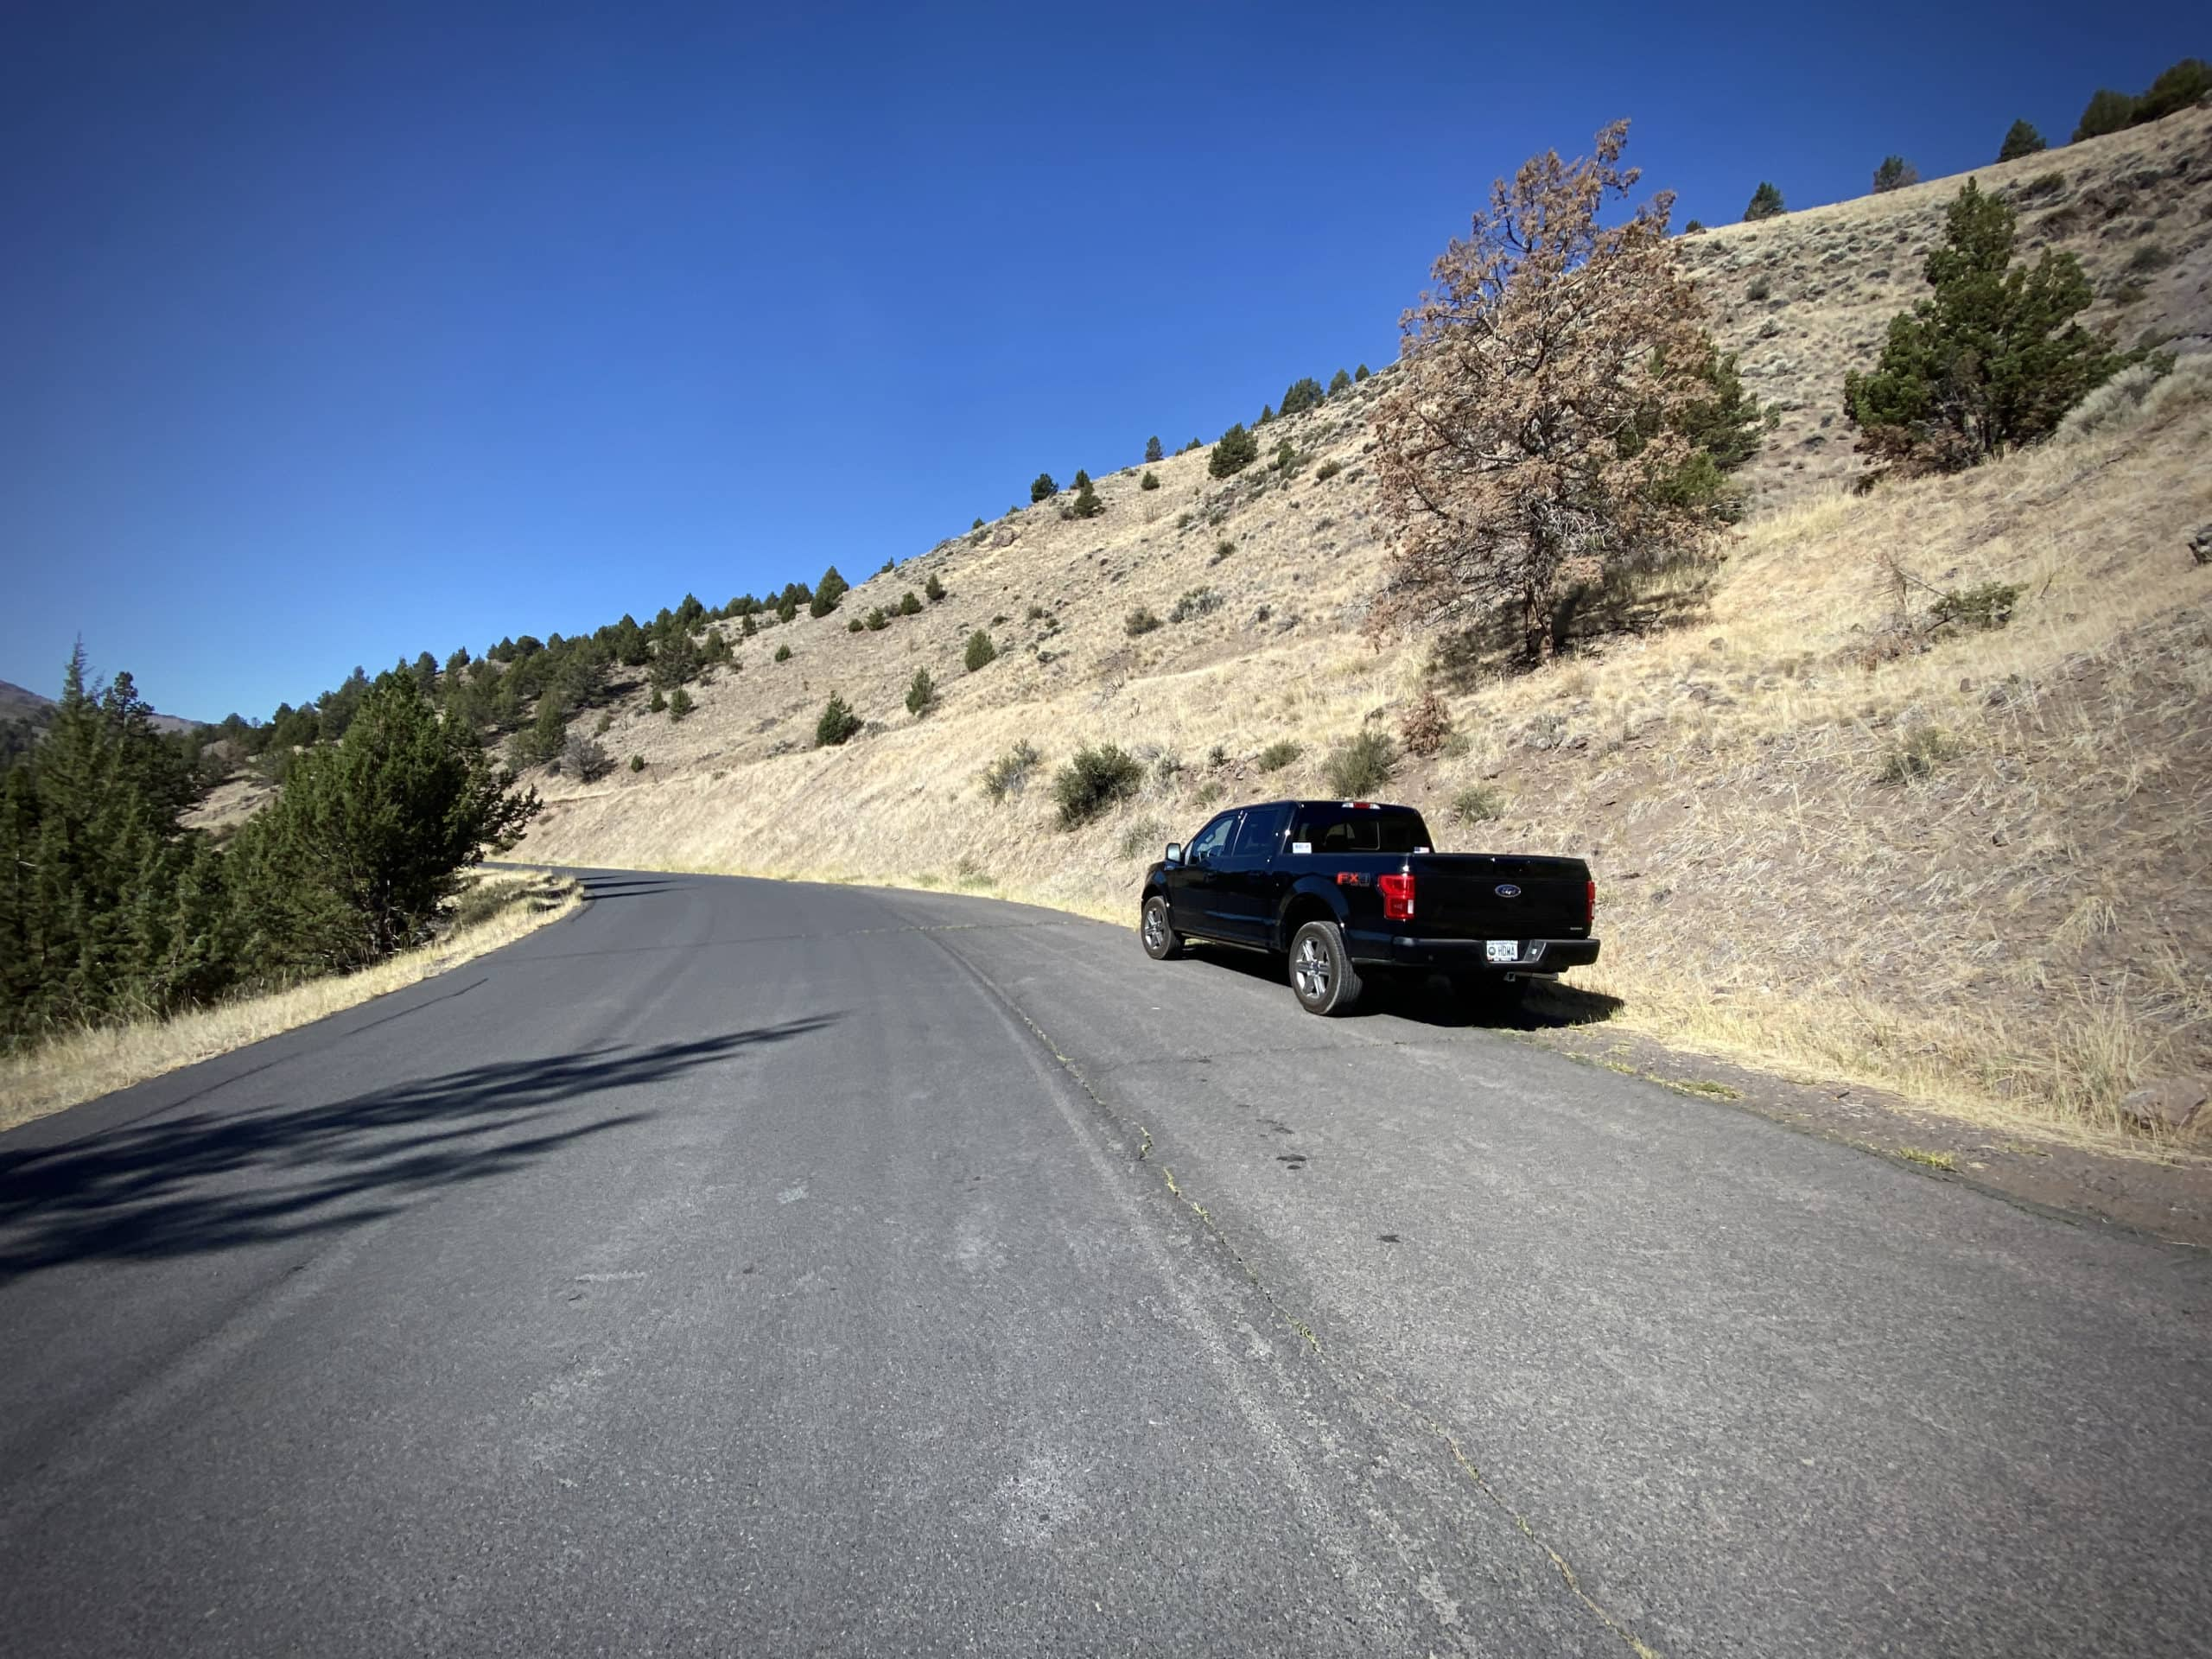 Pullout parking area on NF 33 near Paisley, Oregon.